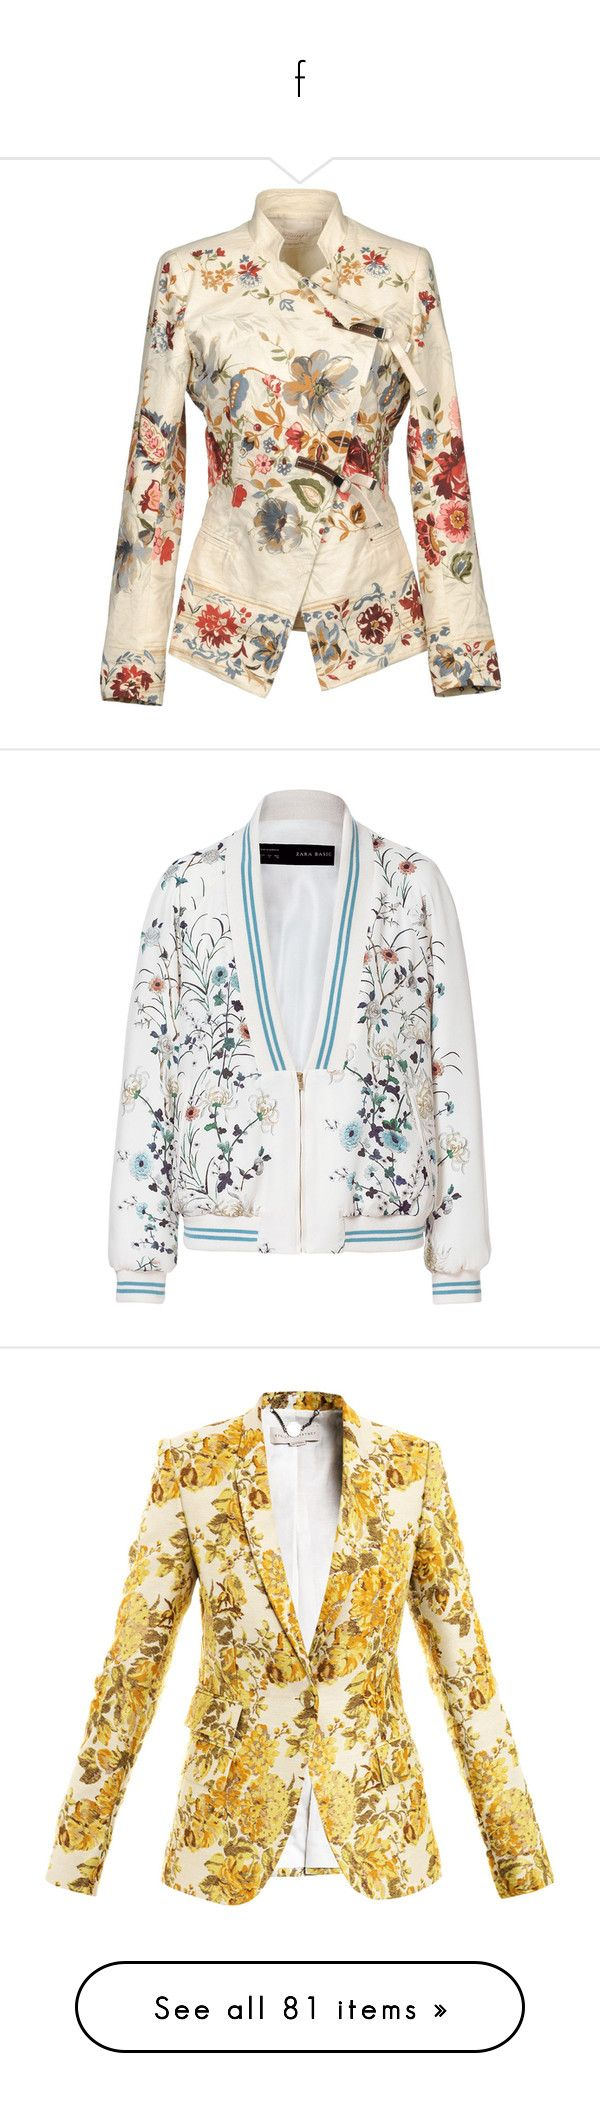 """f"" by anabellaaaa ❤ liked on Polyvore featuring outerwear, jackets, blazers, tops, coats, ivory, double breasted blazer, flower print blazer, cotton blazer and mandarin collar blazer"